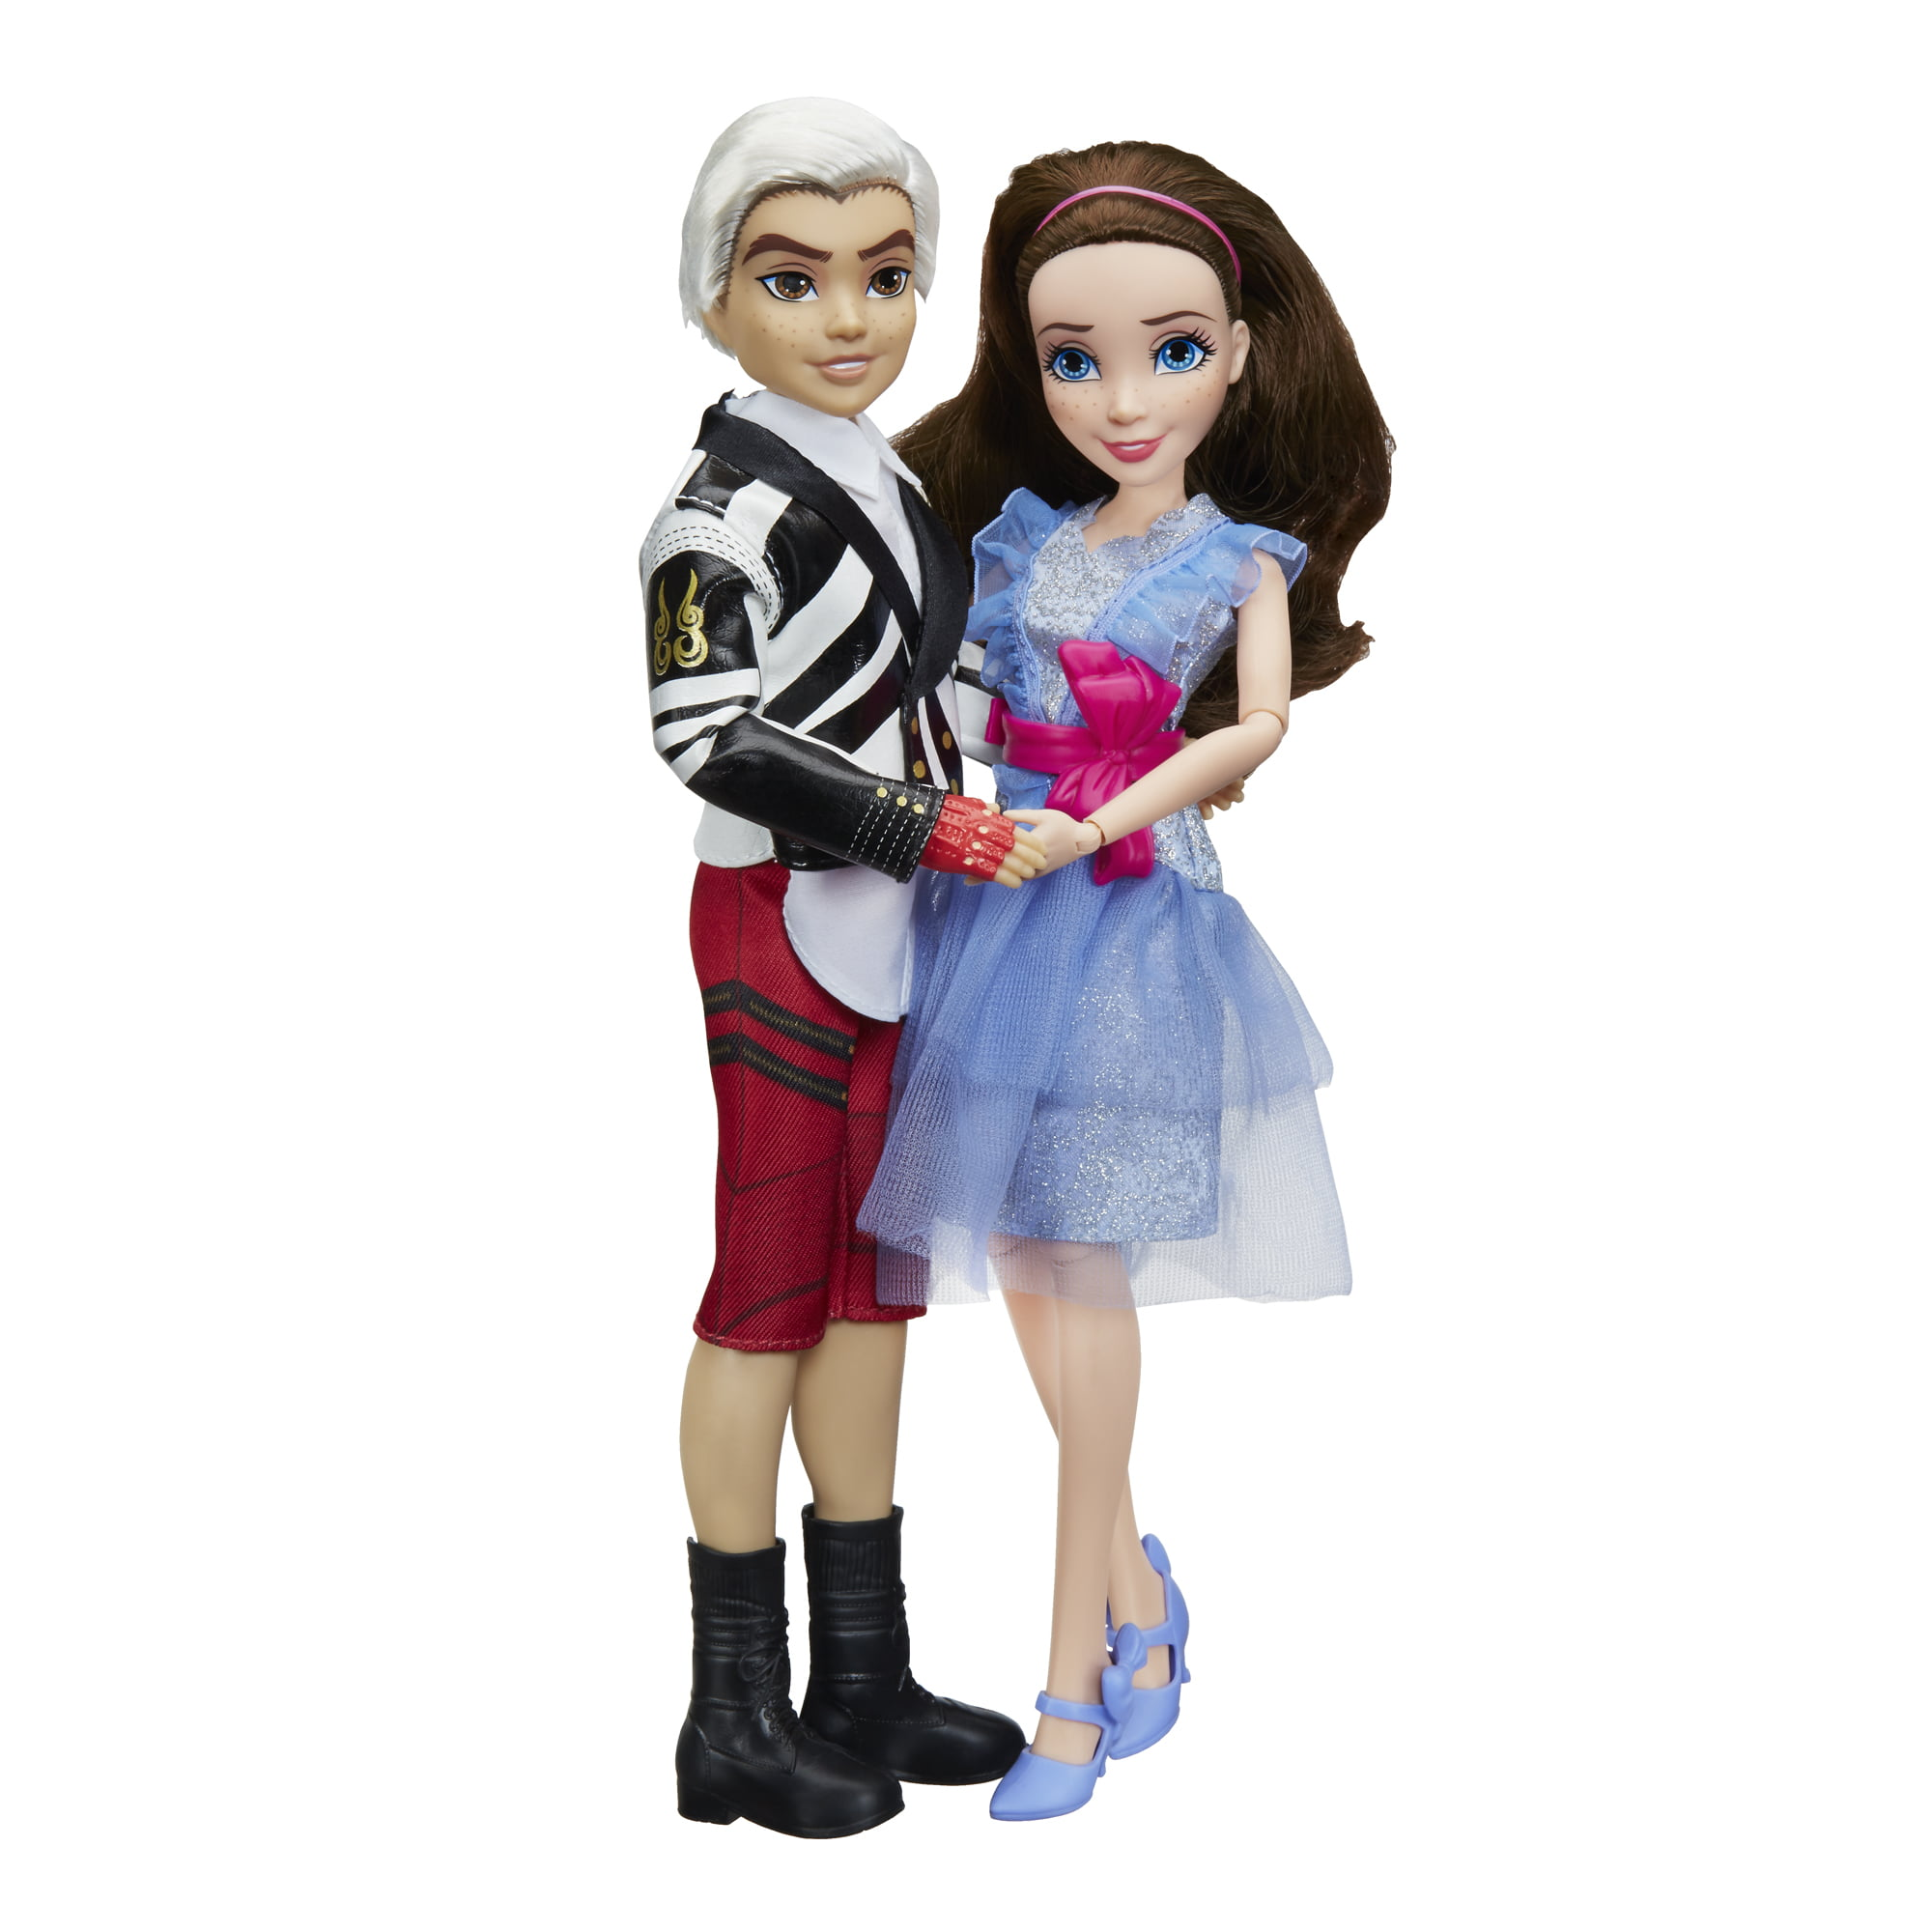 Disney Descendants Two-Pack Jane Auradon Prep and Carlos Isle of the Lost by Hasbro